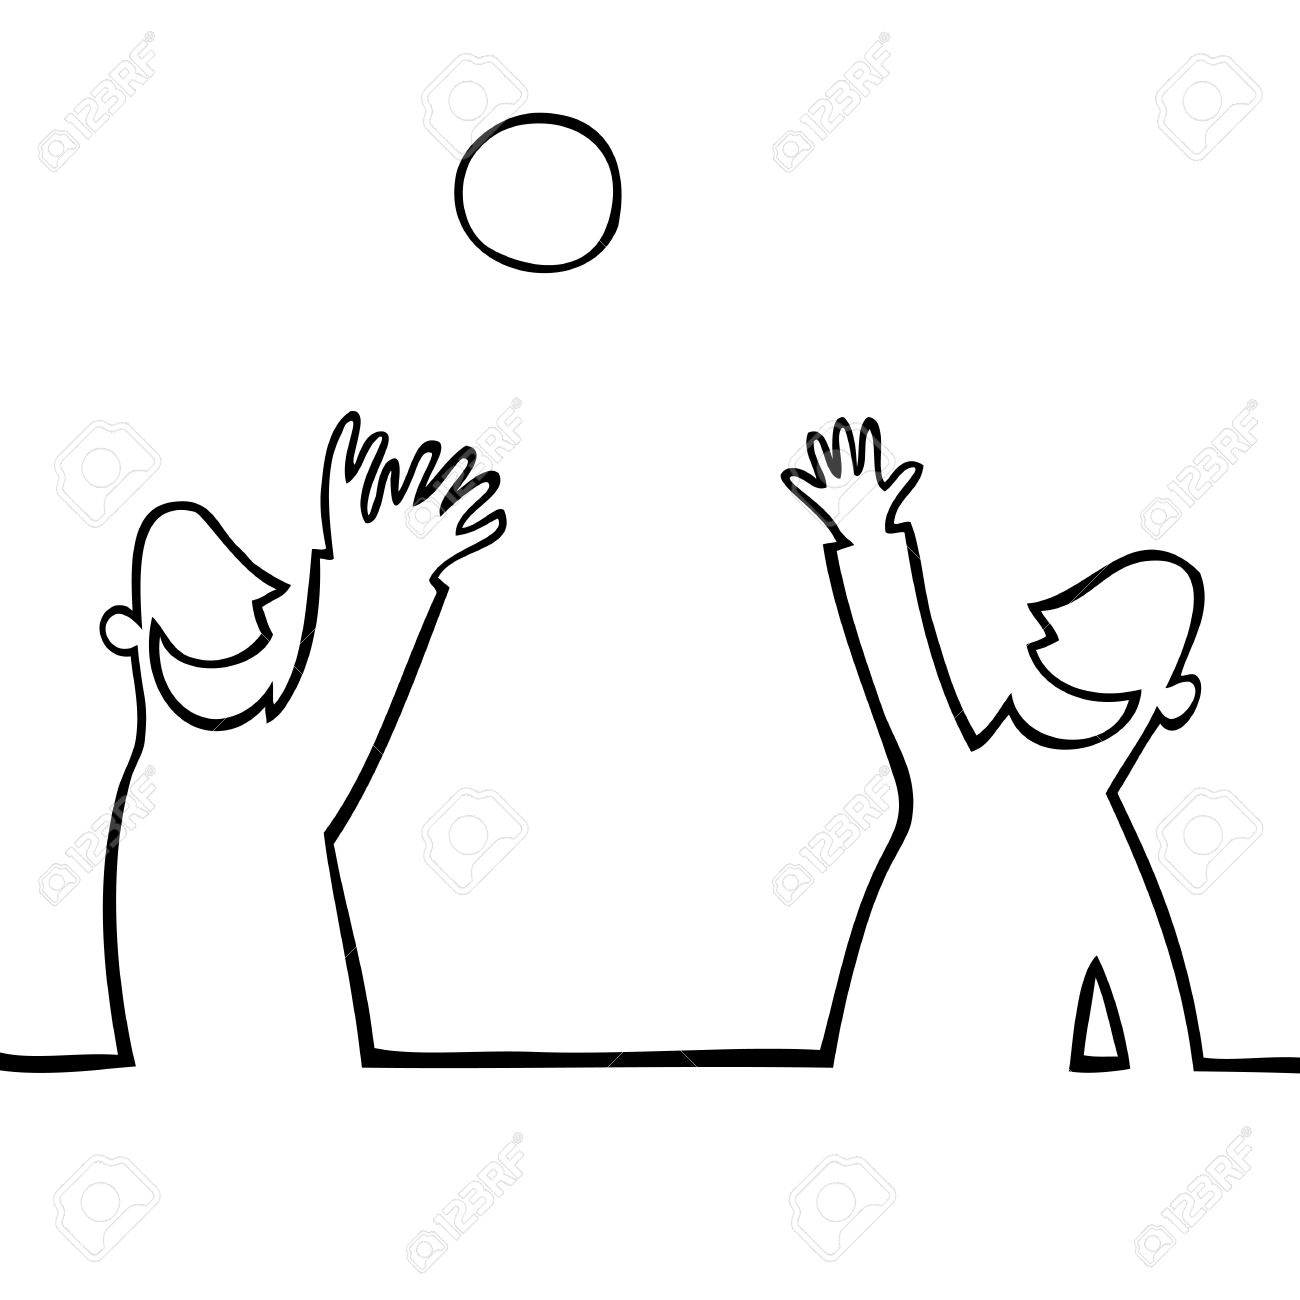 1300x1300 Black And White Drawing Of Two People Throwing A Ball At Each